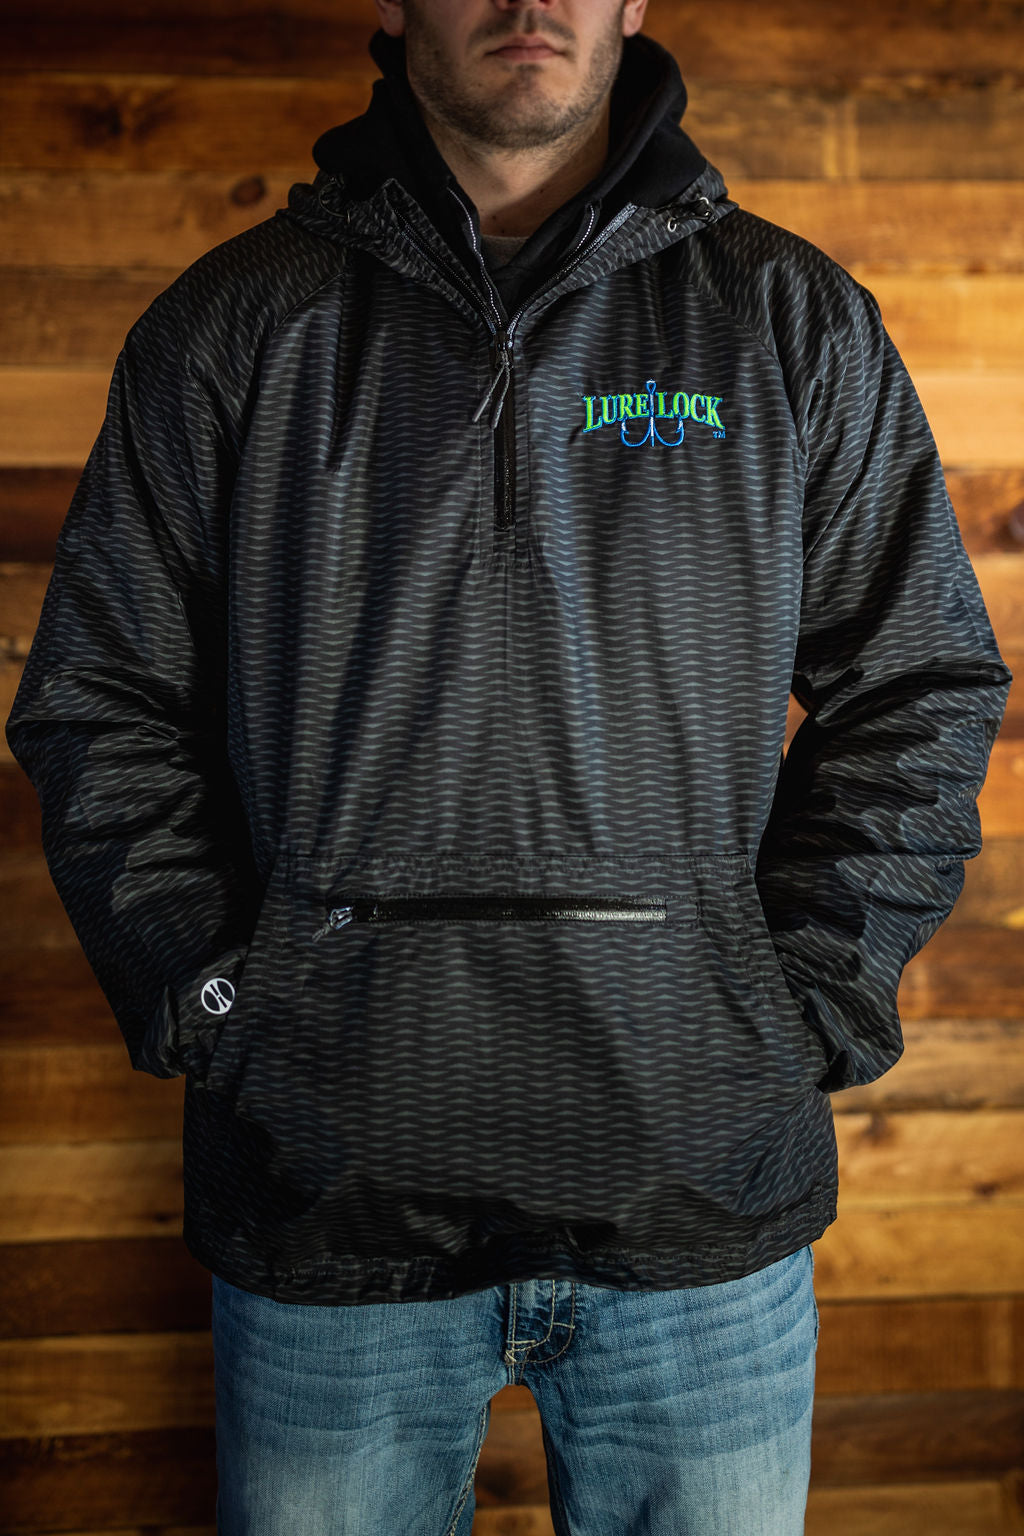 Lure Lock Windbreaker